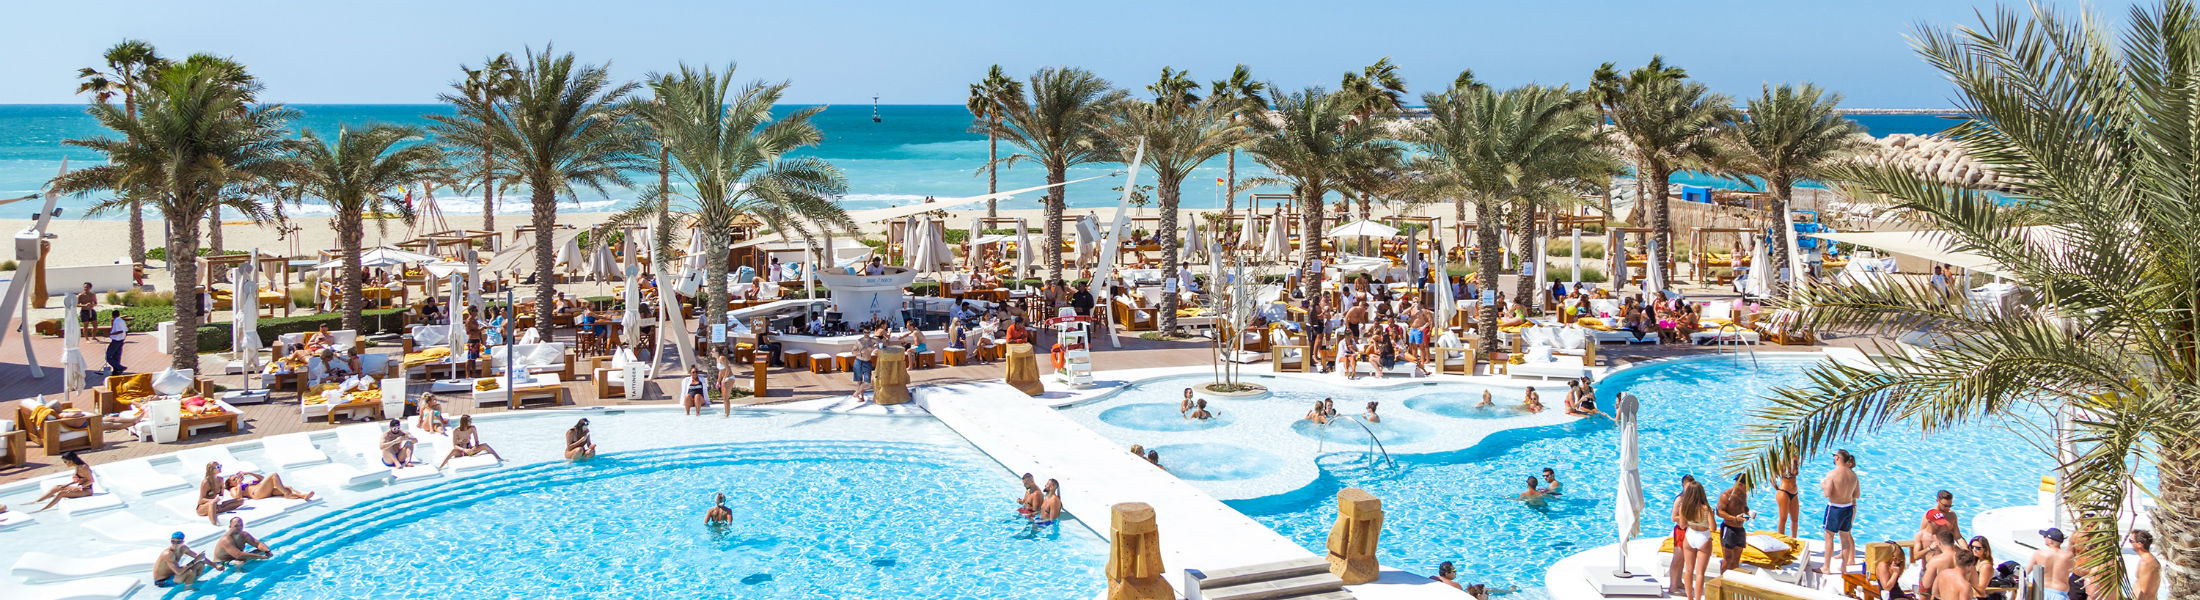 Beach Club at the Nikki Beach Resort & Spa Dubai